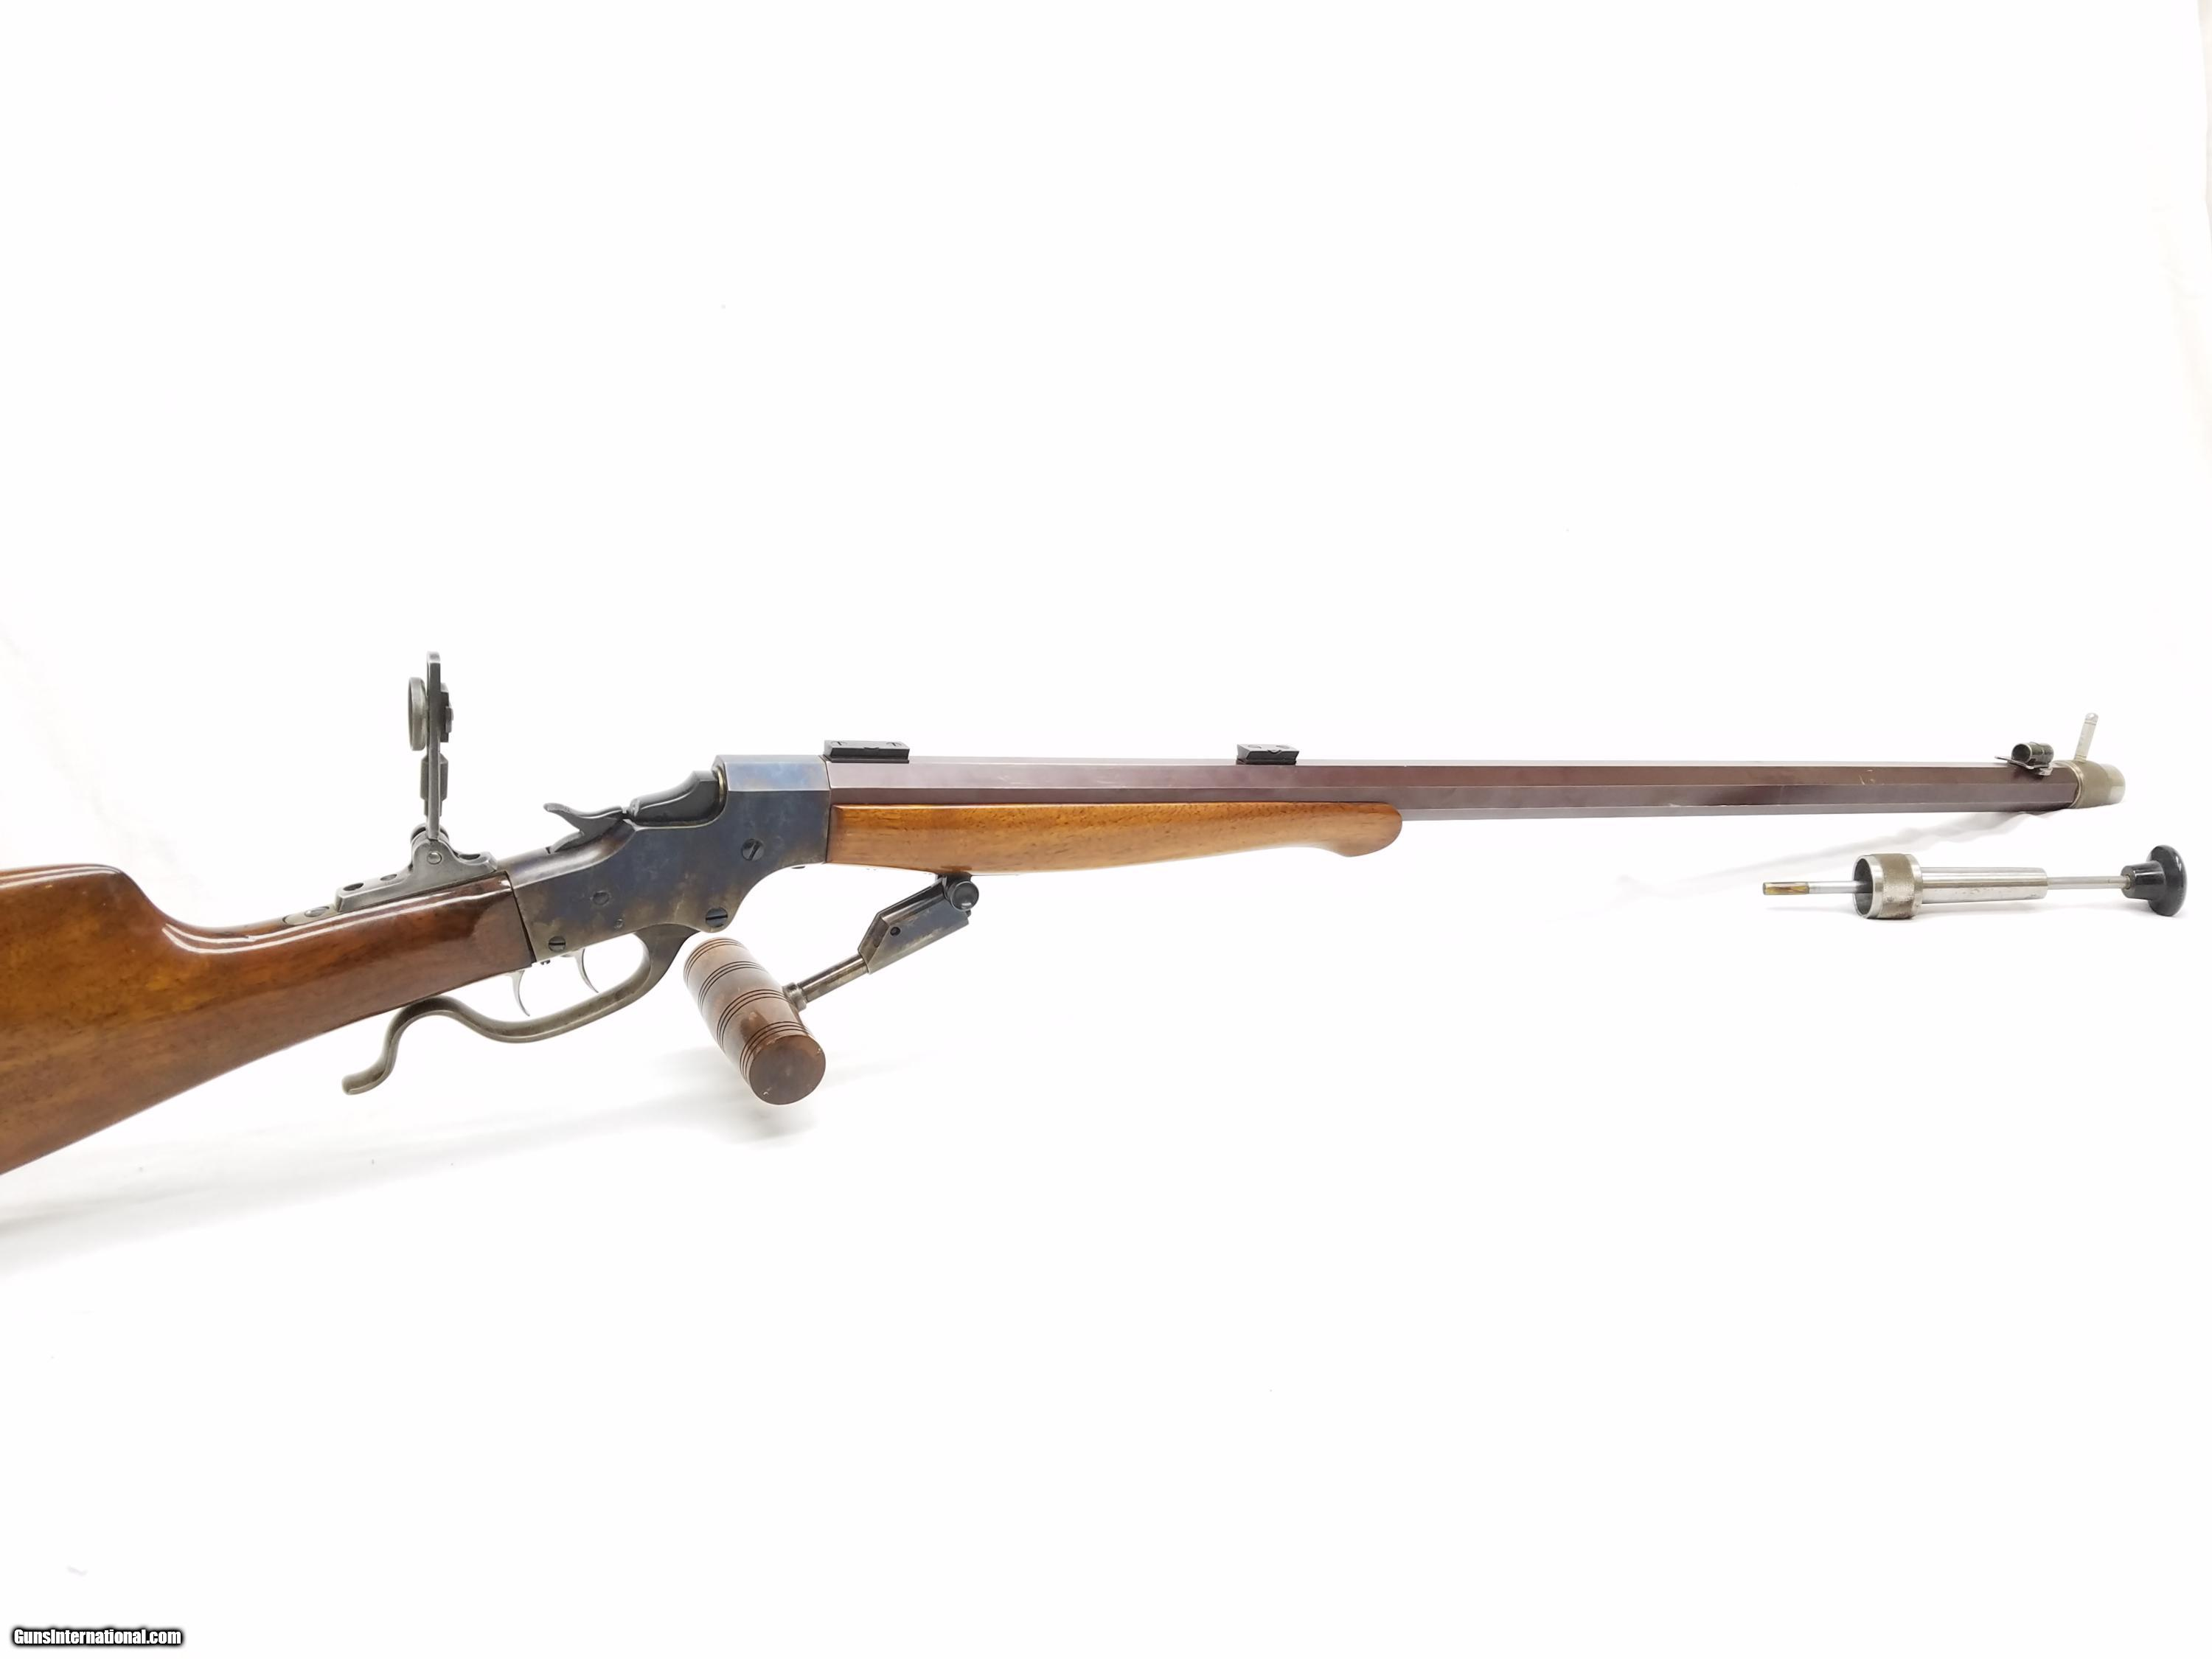 Stevens Model 44-1/2 in 28-30 Stevens, rebarrel Stk #A255 for sale